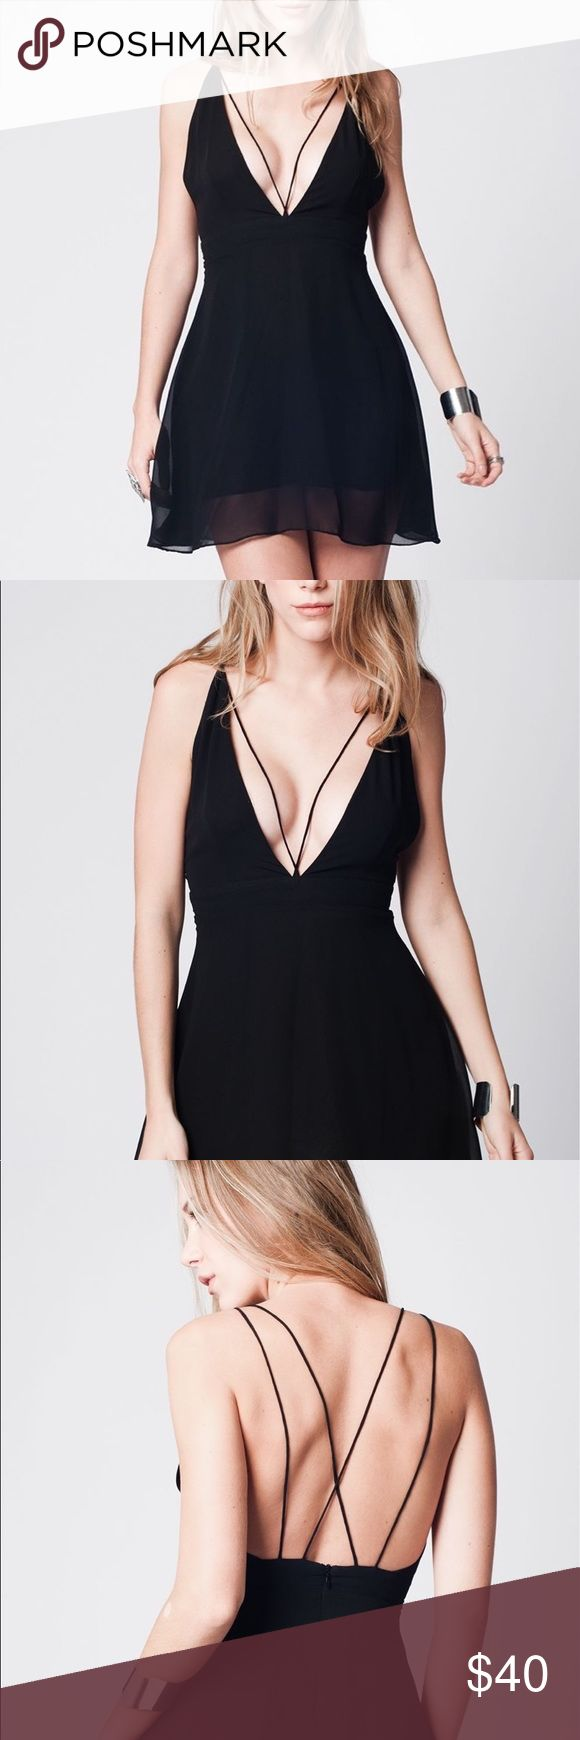 🆕 Black Deep V Cross Back Straps Short Dress The plunging V neckline and cage straps are perfect for this short, flirty little black dress. Very low cut back features a zipper a crossing straps in that ensure the perfect fit. Entire dress is lined and has a super soft opaque polyester slip with a sheer overlay.    100% Polyester Lining: 100% Polyester    SM - US 6 EU 36  MD - US 8 EU 38  Goth Gothic Punk Bondage Boho Chic Bohemian PinUp Rockabilly LBD Club Festival Chiffon Dolls Kill Bebe…